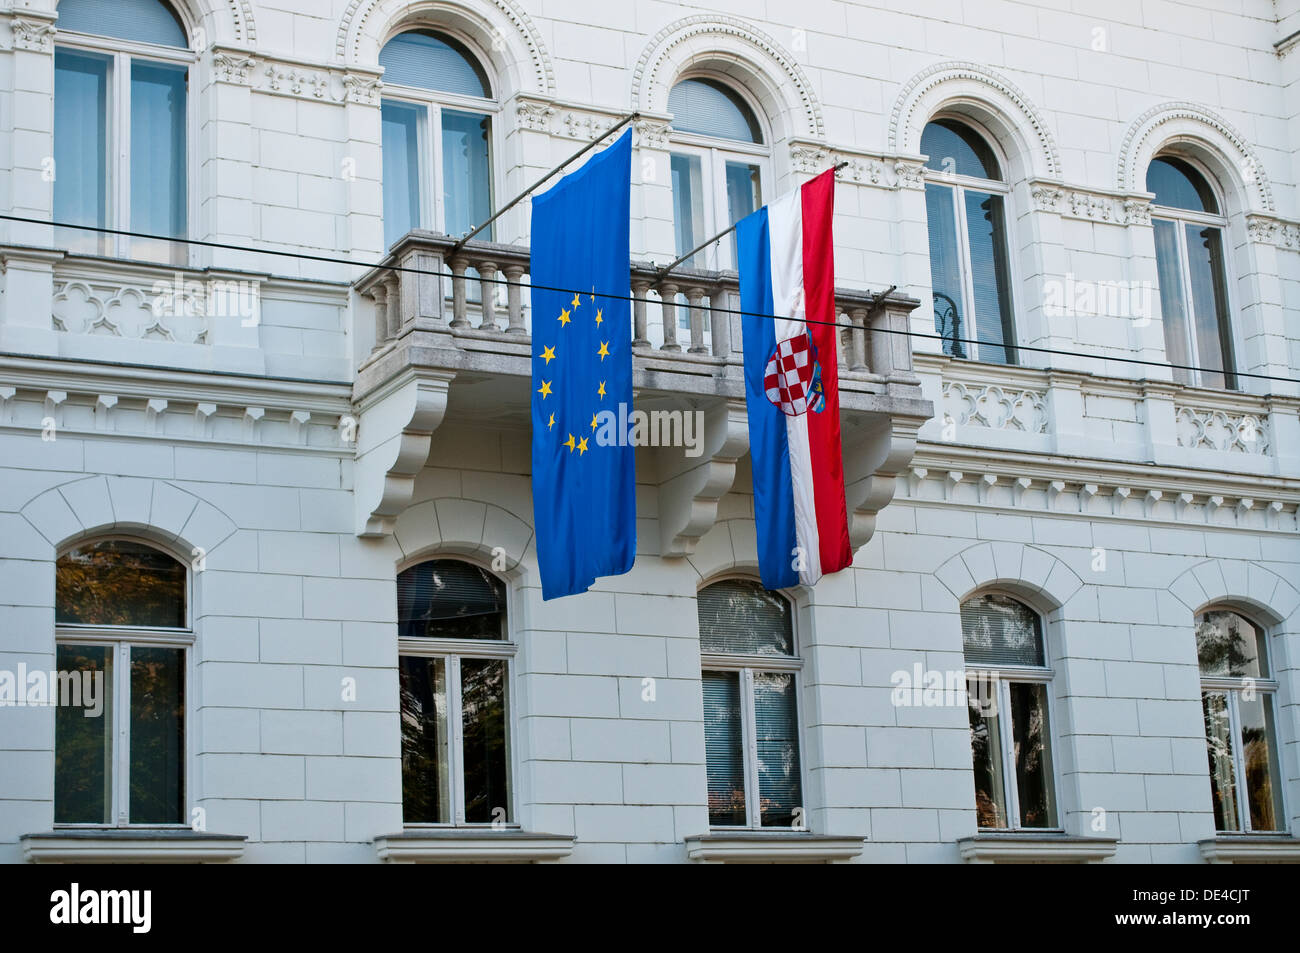 Croatian and European Union flags on a government building, Zagreb, Croatia - Stock Image